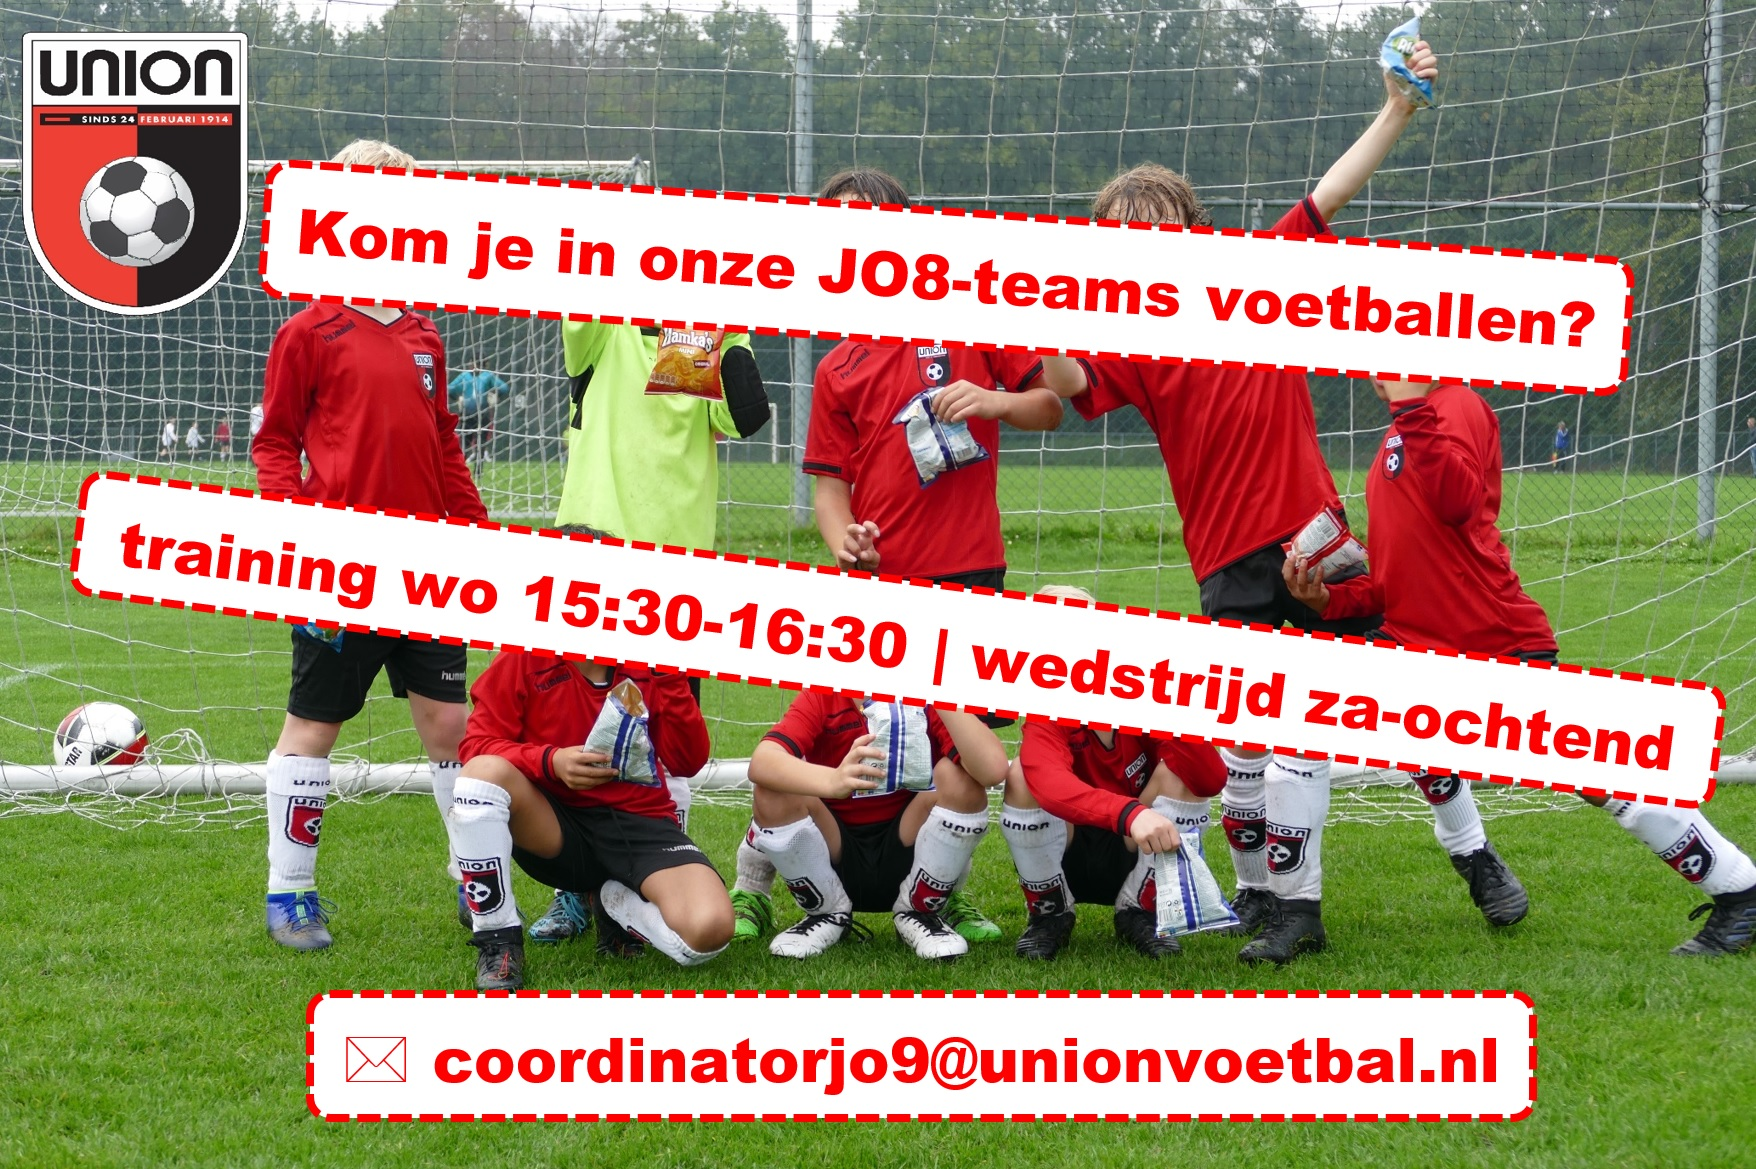 Begin met voetballen in een JO8-team!